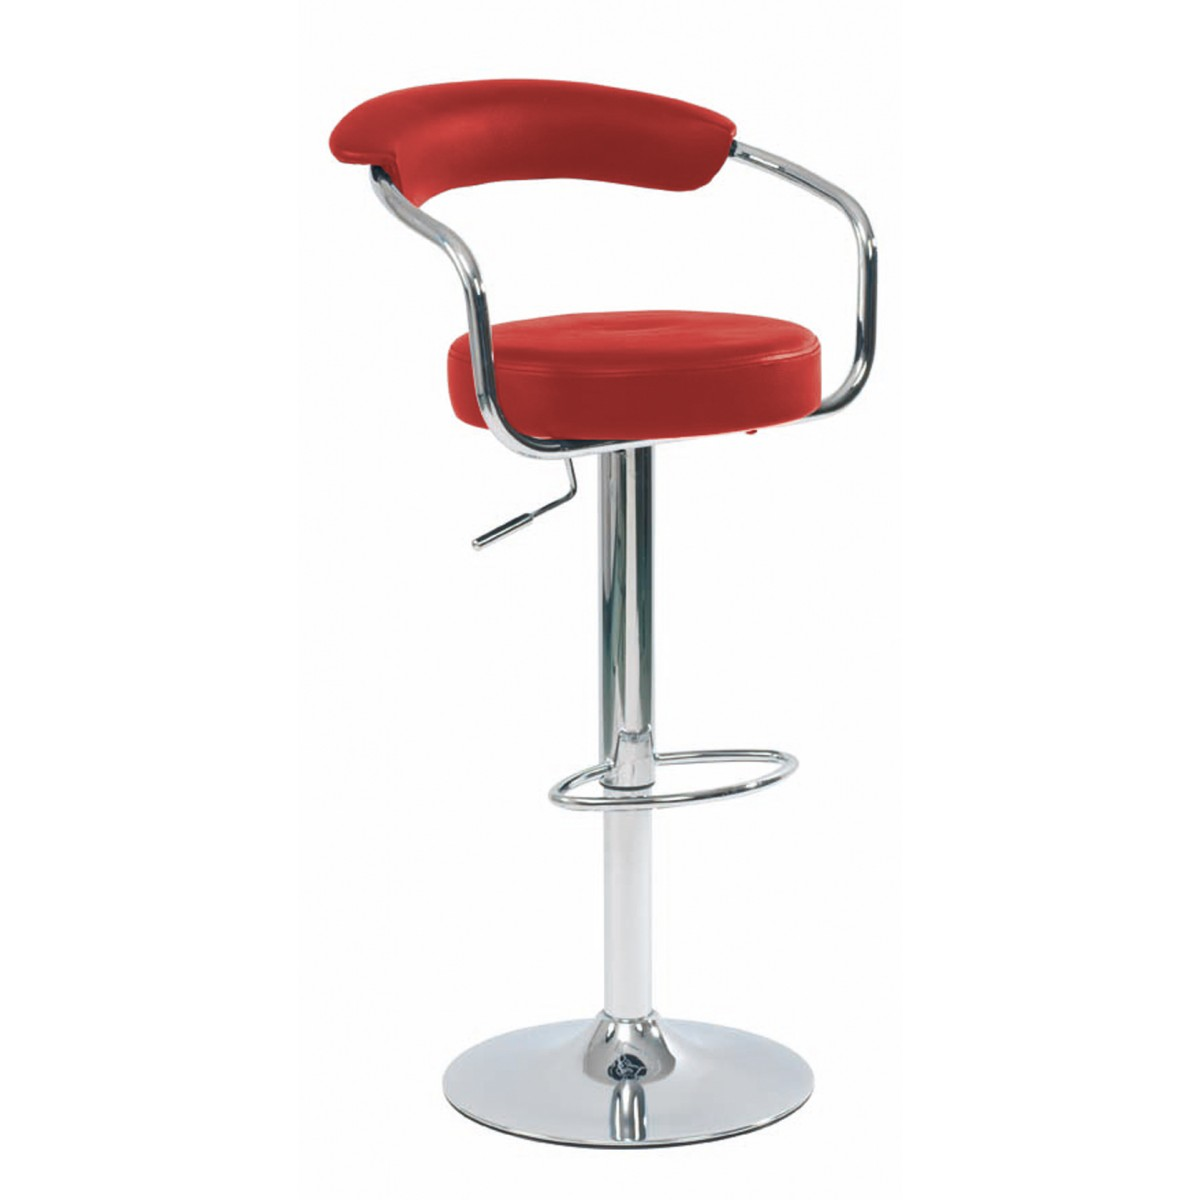 Lot Chaise De Bar Tabouret De Bar Rouge Avec Accoudoirs Lot De 2